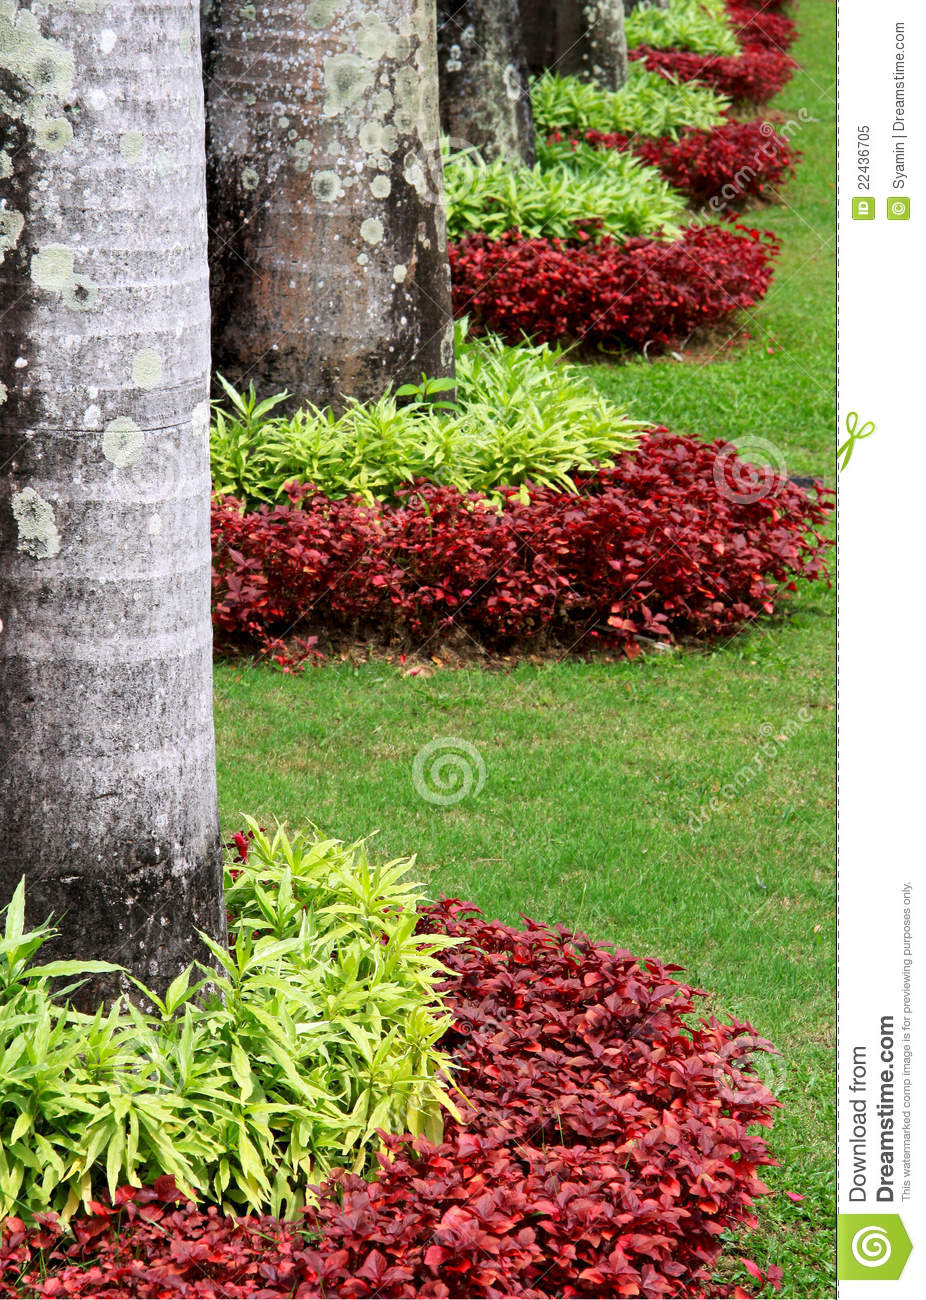 D coration du jardin de centrale photo libre de droits - Decoration du jardin ...